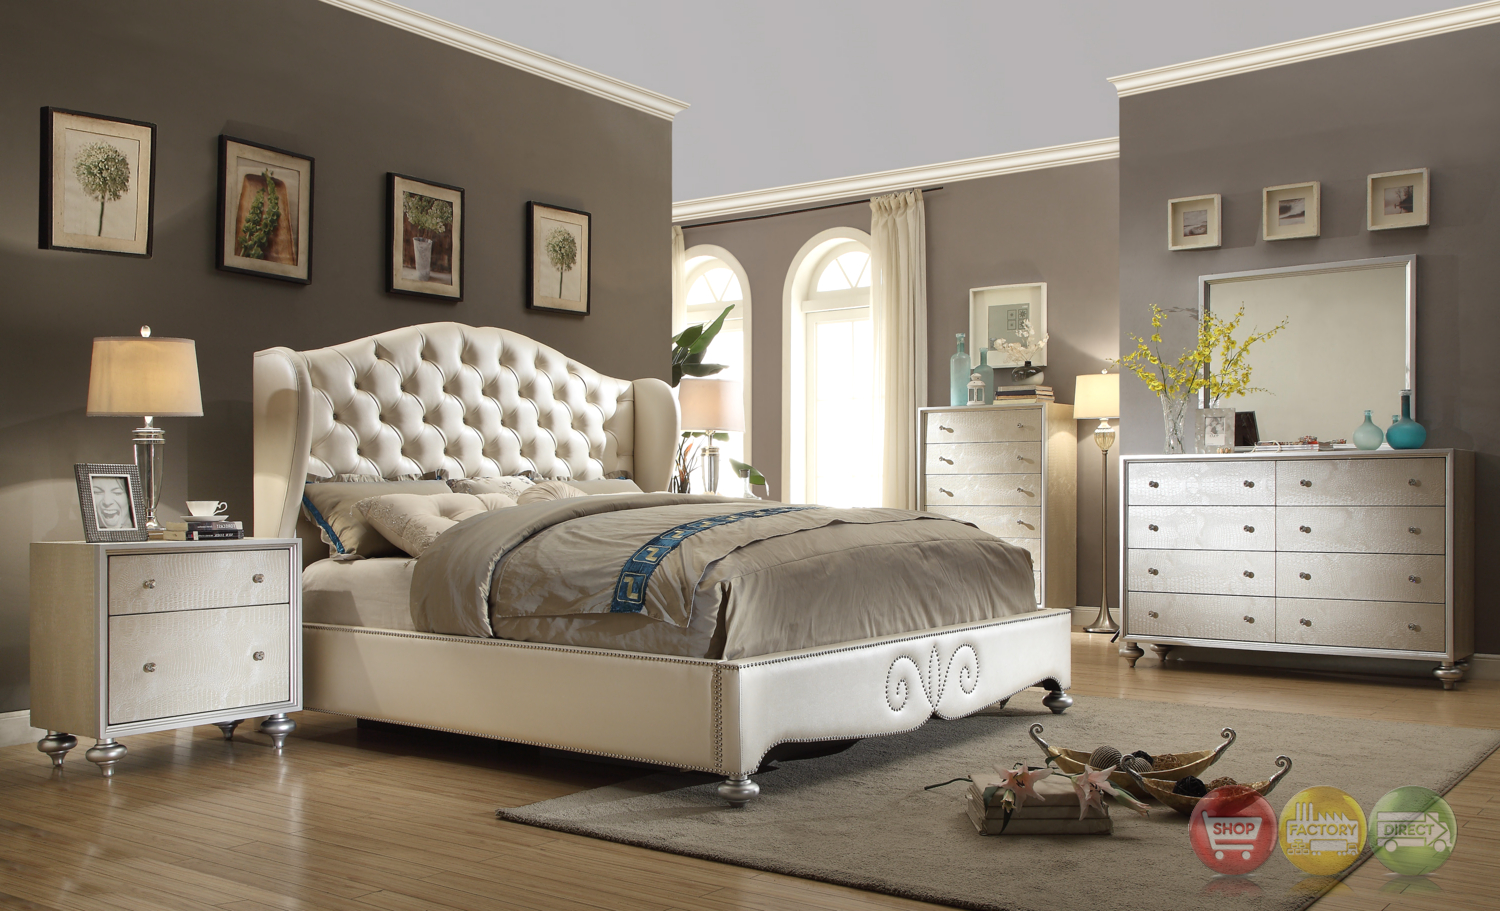 Glamorous pearl white button tufted wing back bed faux for Bed and bedroom furniture sets